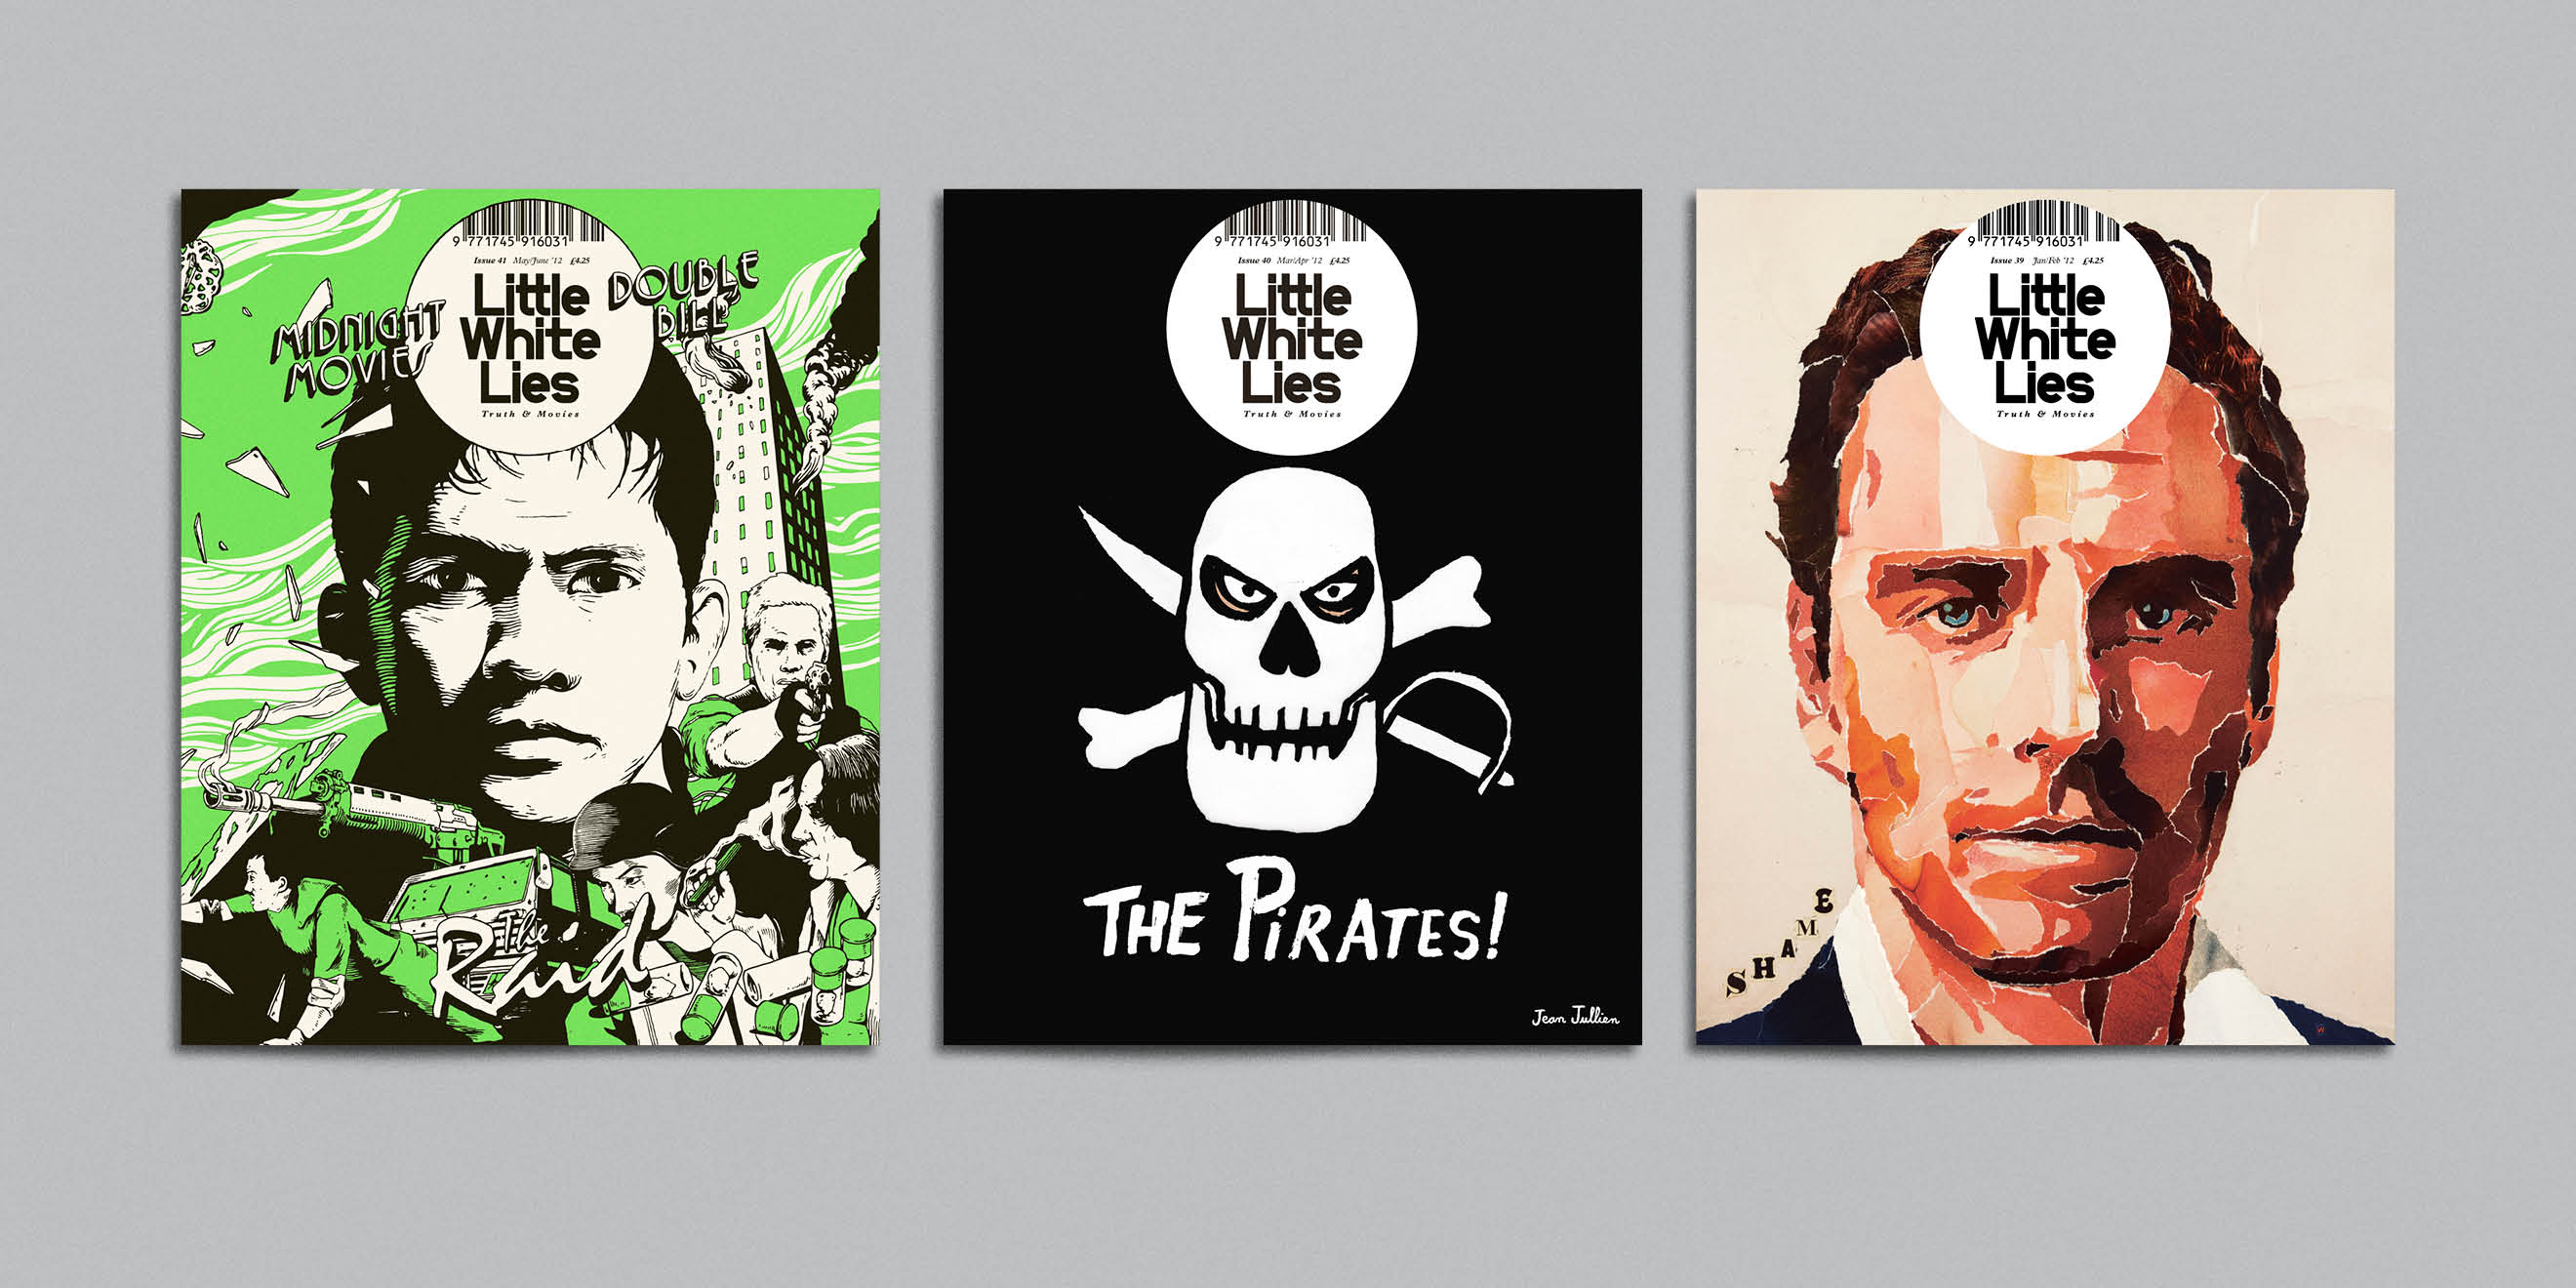 Little White Lies movie magazine illustrated covers - The Raid, The Pirates!, Shame